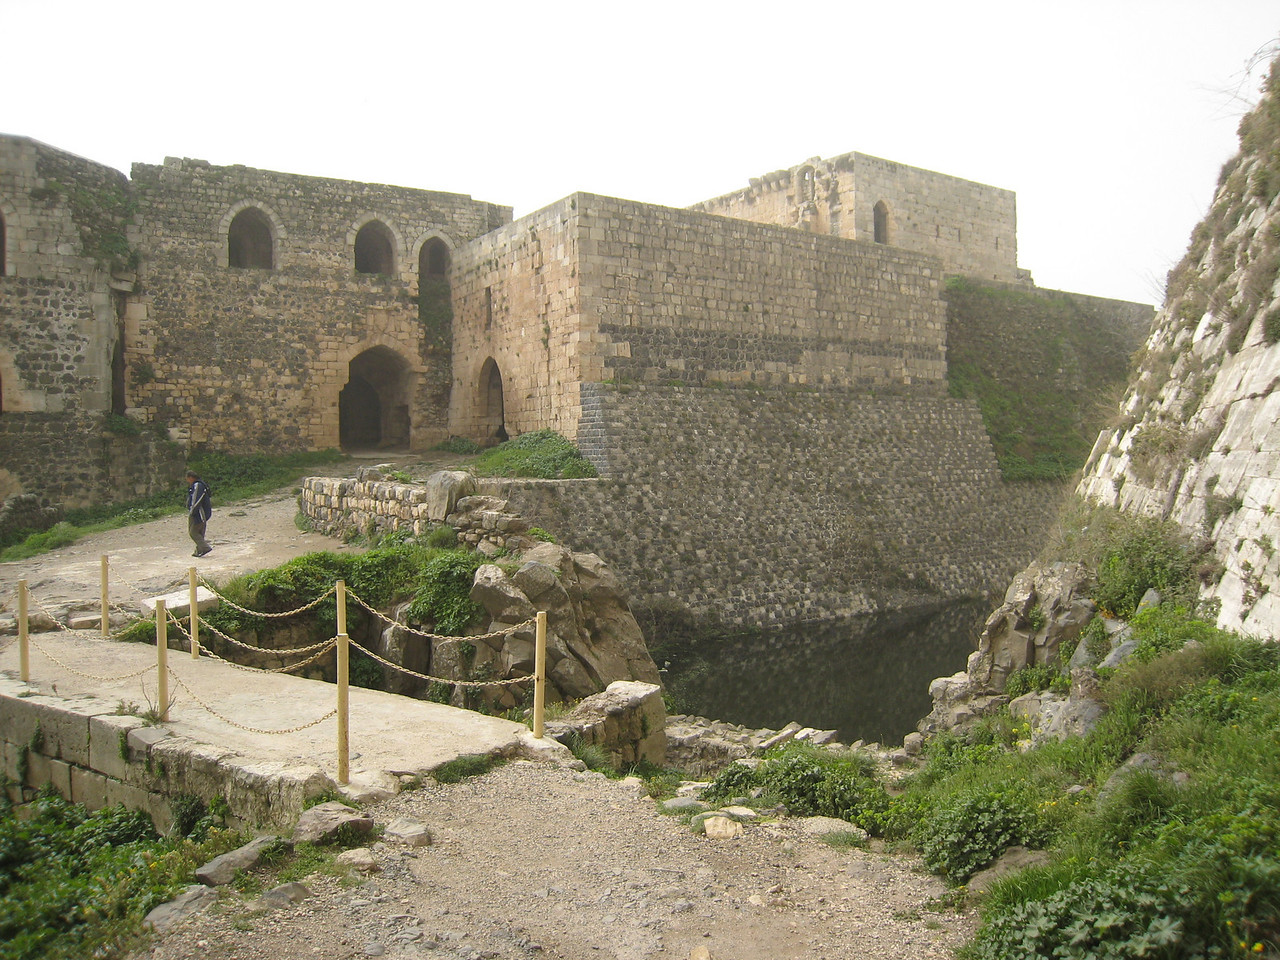 Inside the castle between the outer and inner walls.